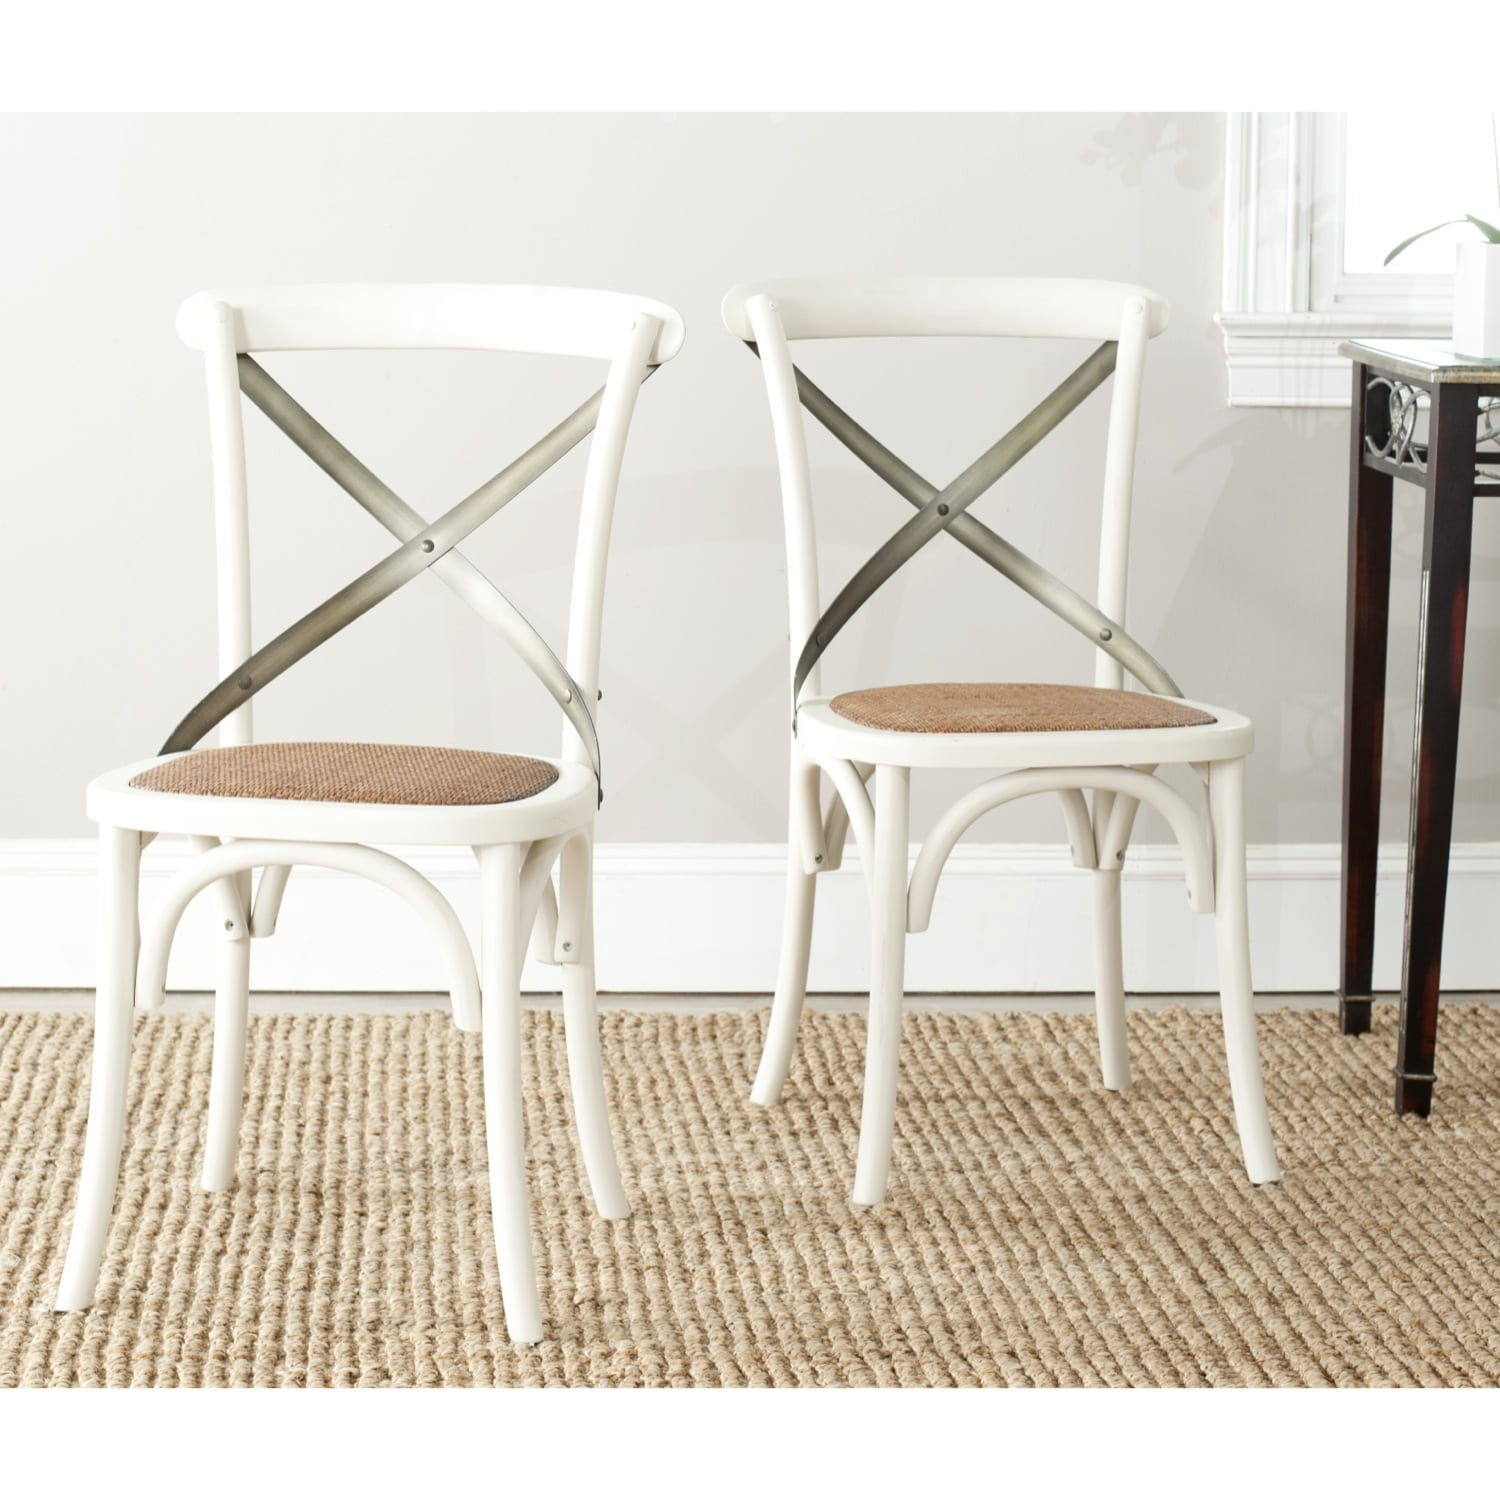 Safavieh Country Classic Dining Eleanor Antique White X-Back Dining Chairs  (Set of 2) - Free Shipping Today - Overstock.com - 15217069 - Safavieh Country Classic Dining Eleanor Antique White X-Back Dining